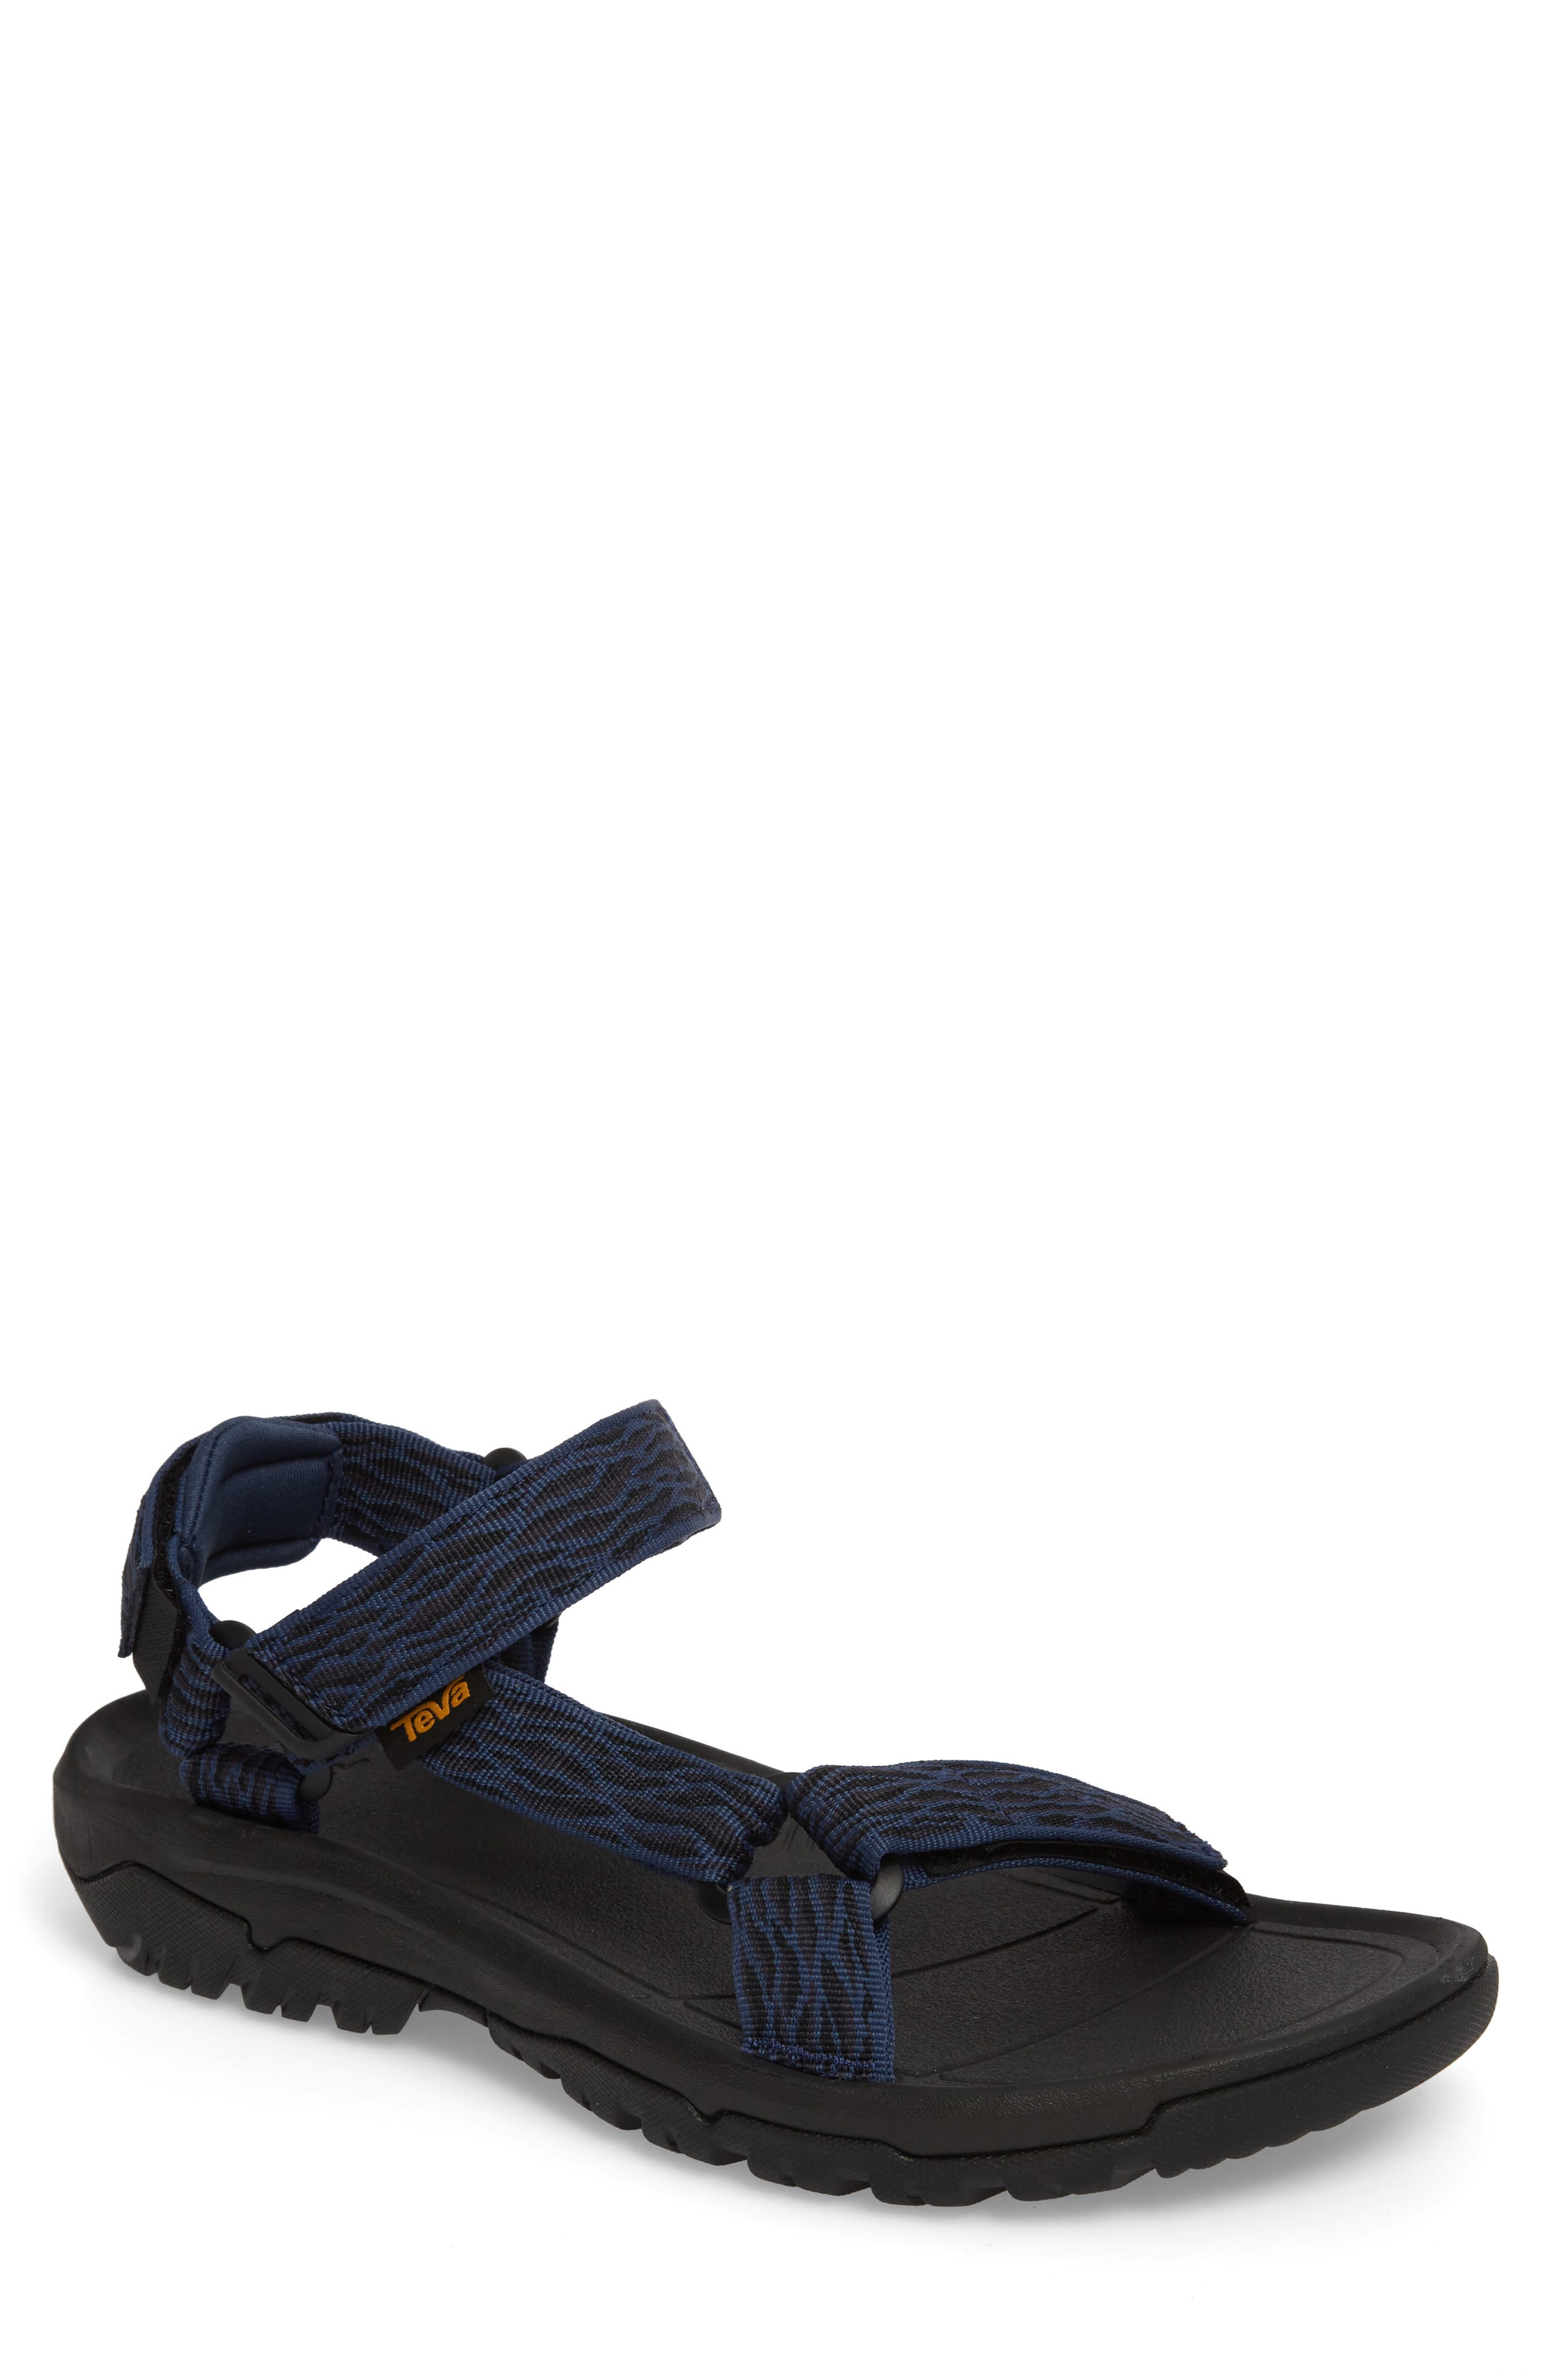 cc440f6088d9 Black Teva Sandals